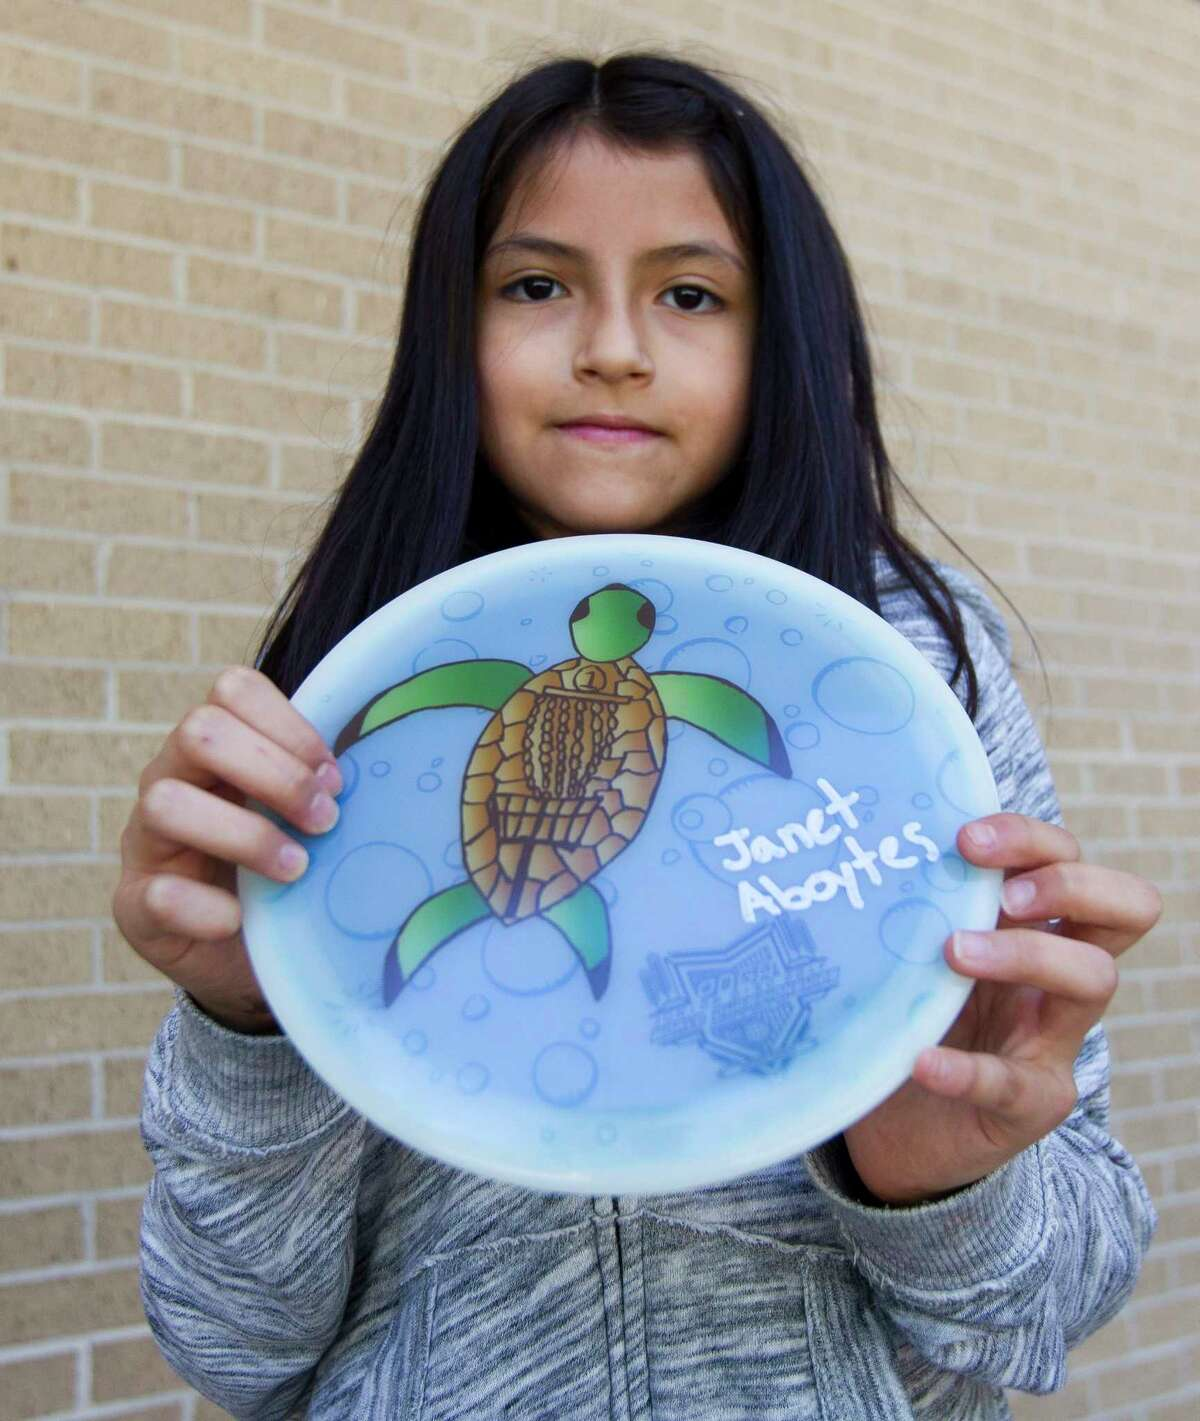 B.B. Rice third grader Janet Aboytes holds a disc of her design, which won a worldwide Facebook contest where sales from her disc support the 2018 PDGA Junior Worlds Championship to be held in July in Emporia, Kansas.